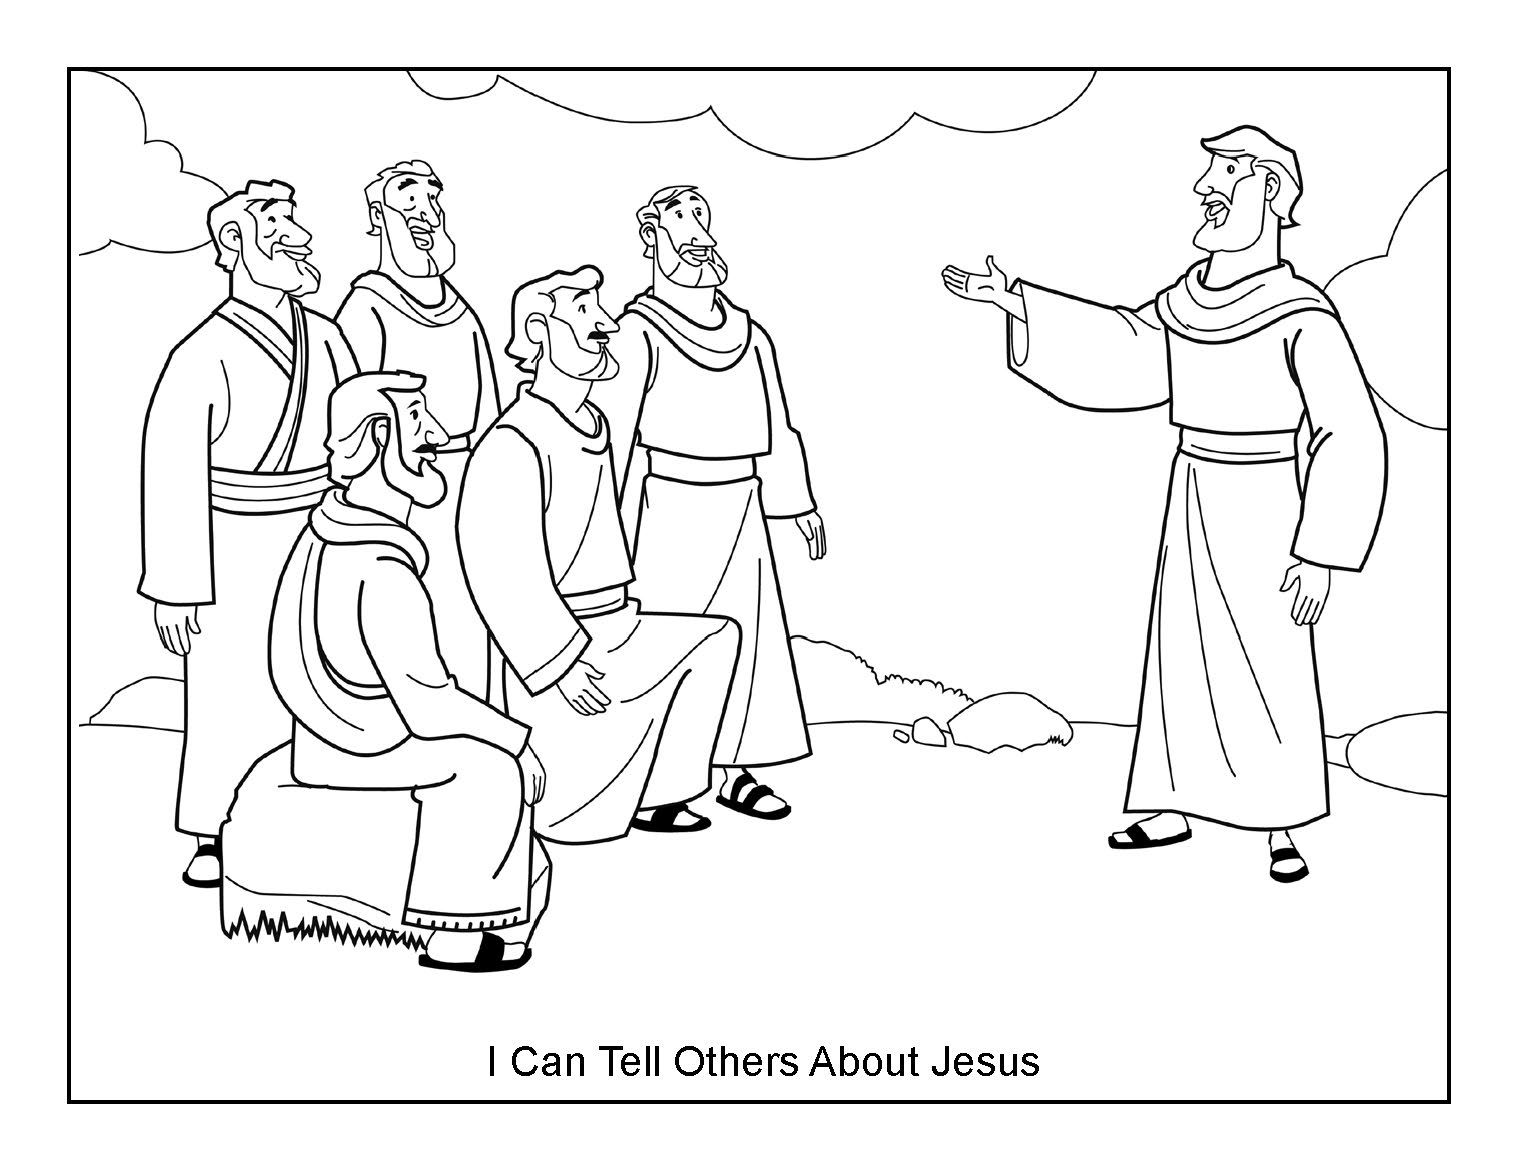 Jesus Talks With Disciples Coloring Pages - Coloring Pages Ideas